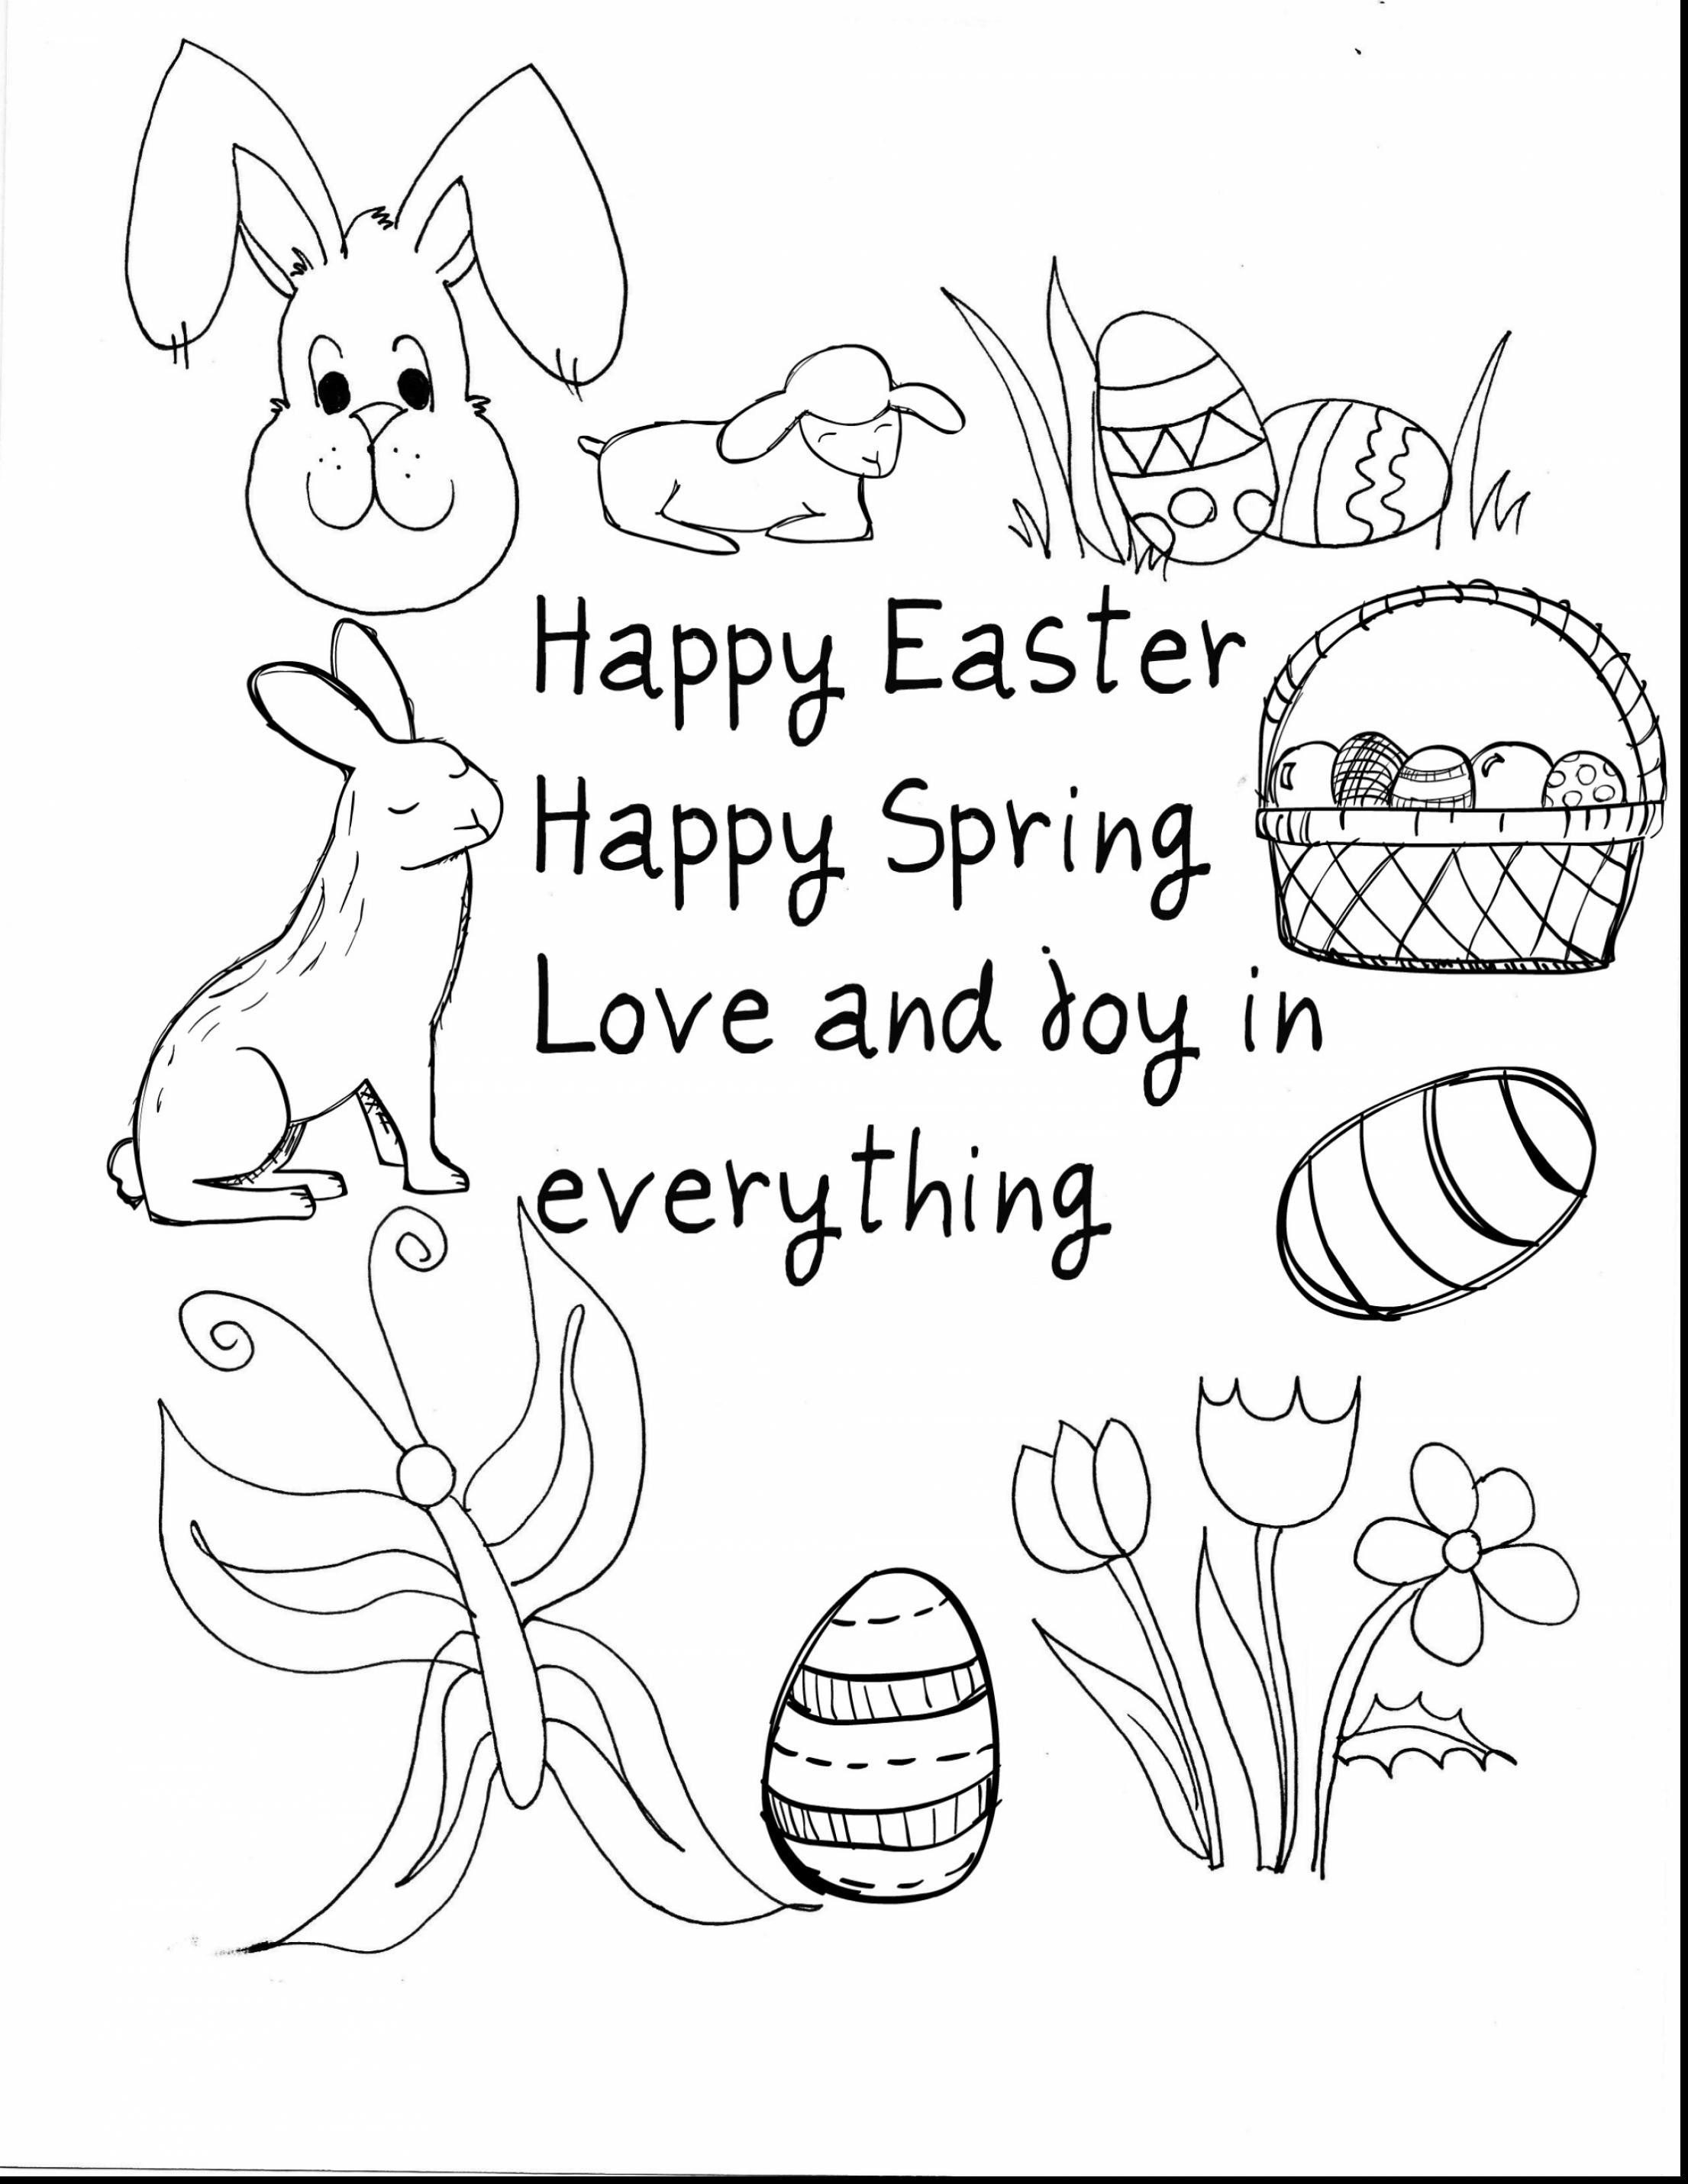 sunday school coloring pages easter Download-Coloring Pages Free Easter Pages For Sunday School Pages Sunday School Sheets Elegant Religious Easter 8-c